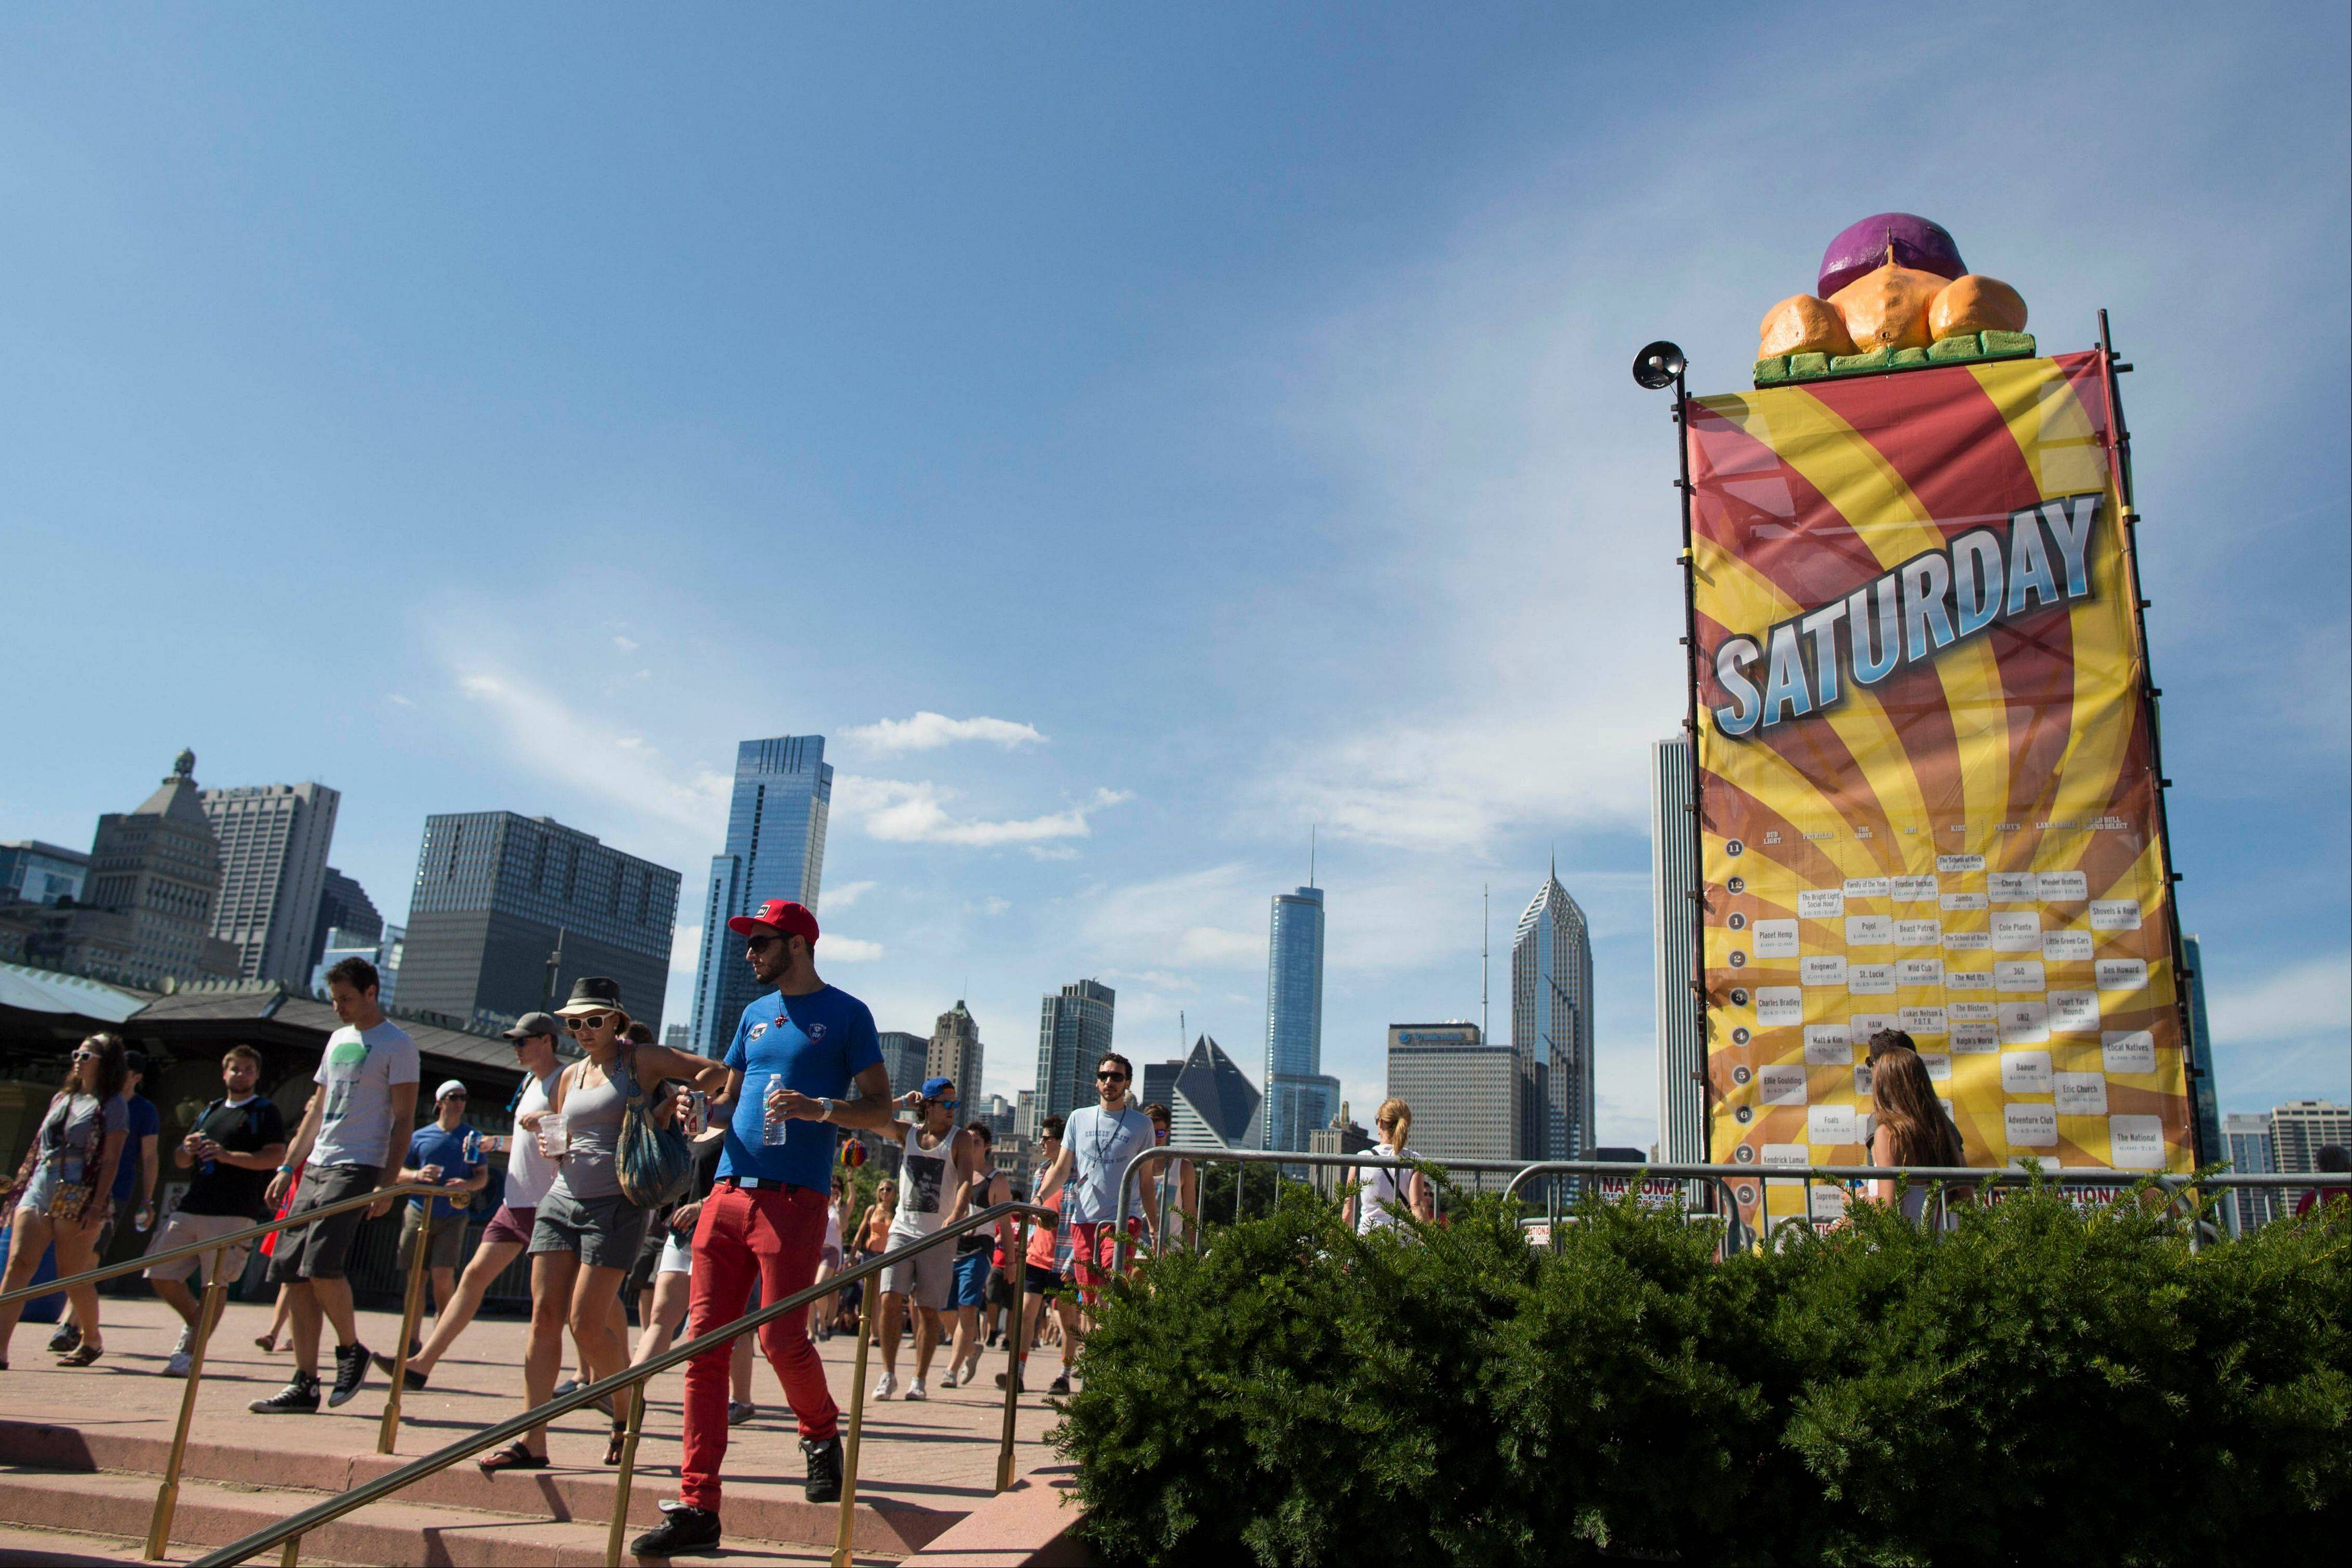 Festival attendees walk past a large Lollapalooza schedule at the Lollapalooza Festival in Chicago, Saturday, Aug. 3, 2013. The more than two-decade-old festival opened Friday in Chicago's lakefront Grant Park.